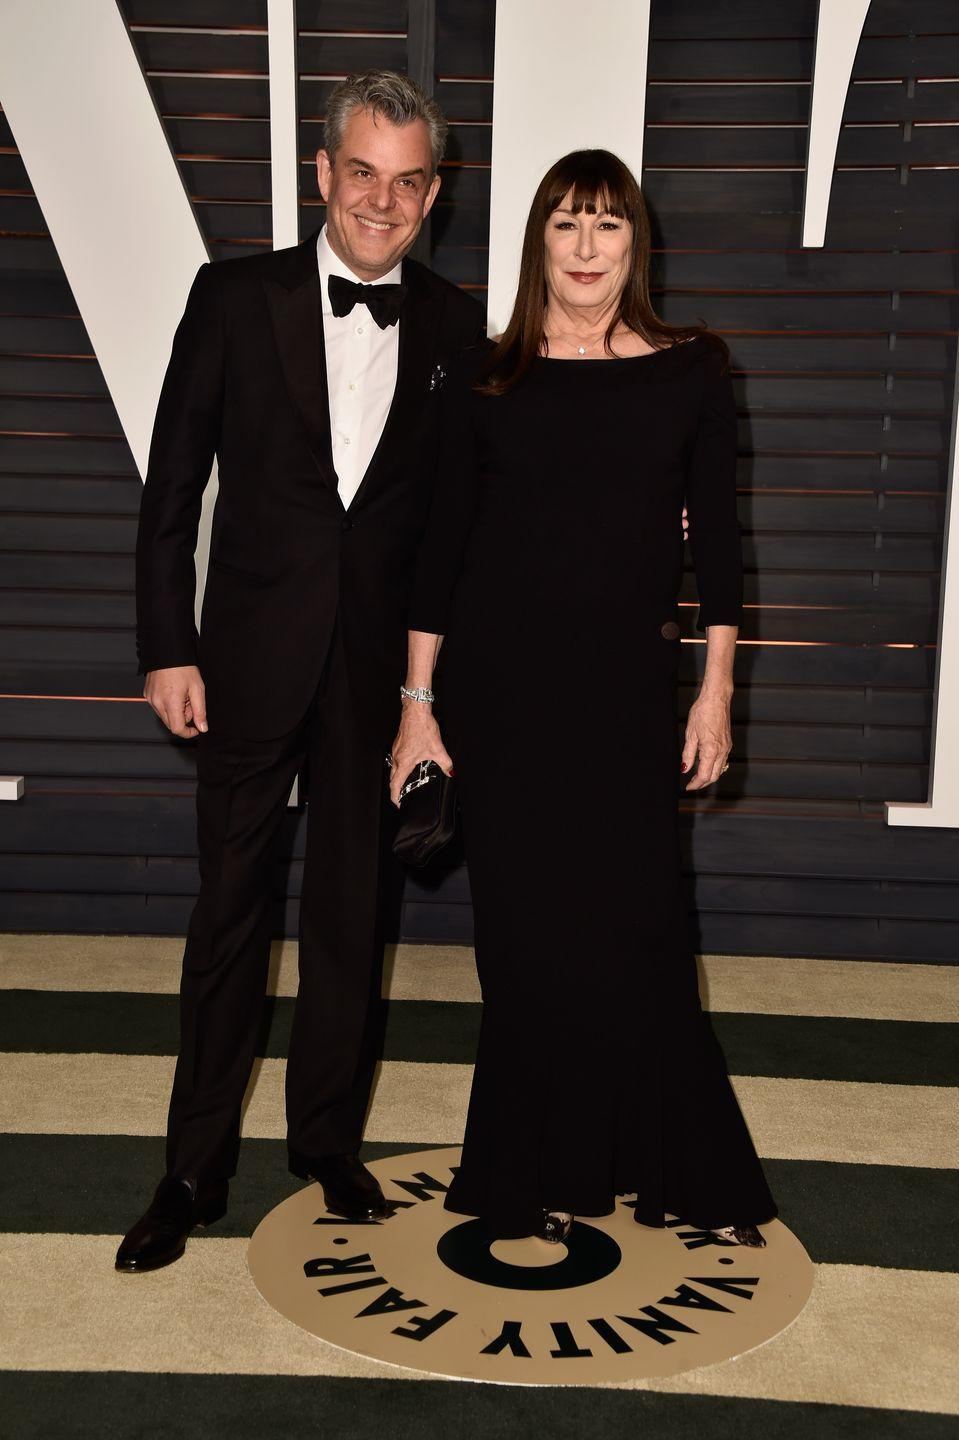 <p>Danny and Anjelica Huston both followed their Hollywood director father into show business. The actors have the same square chin and prominent jaw that their father, John Huston, was known for. </p>